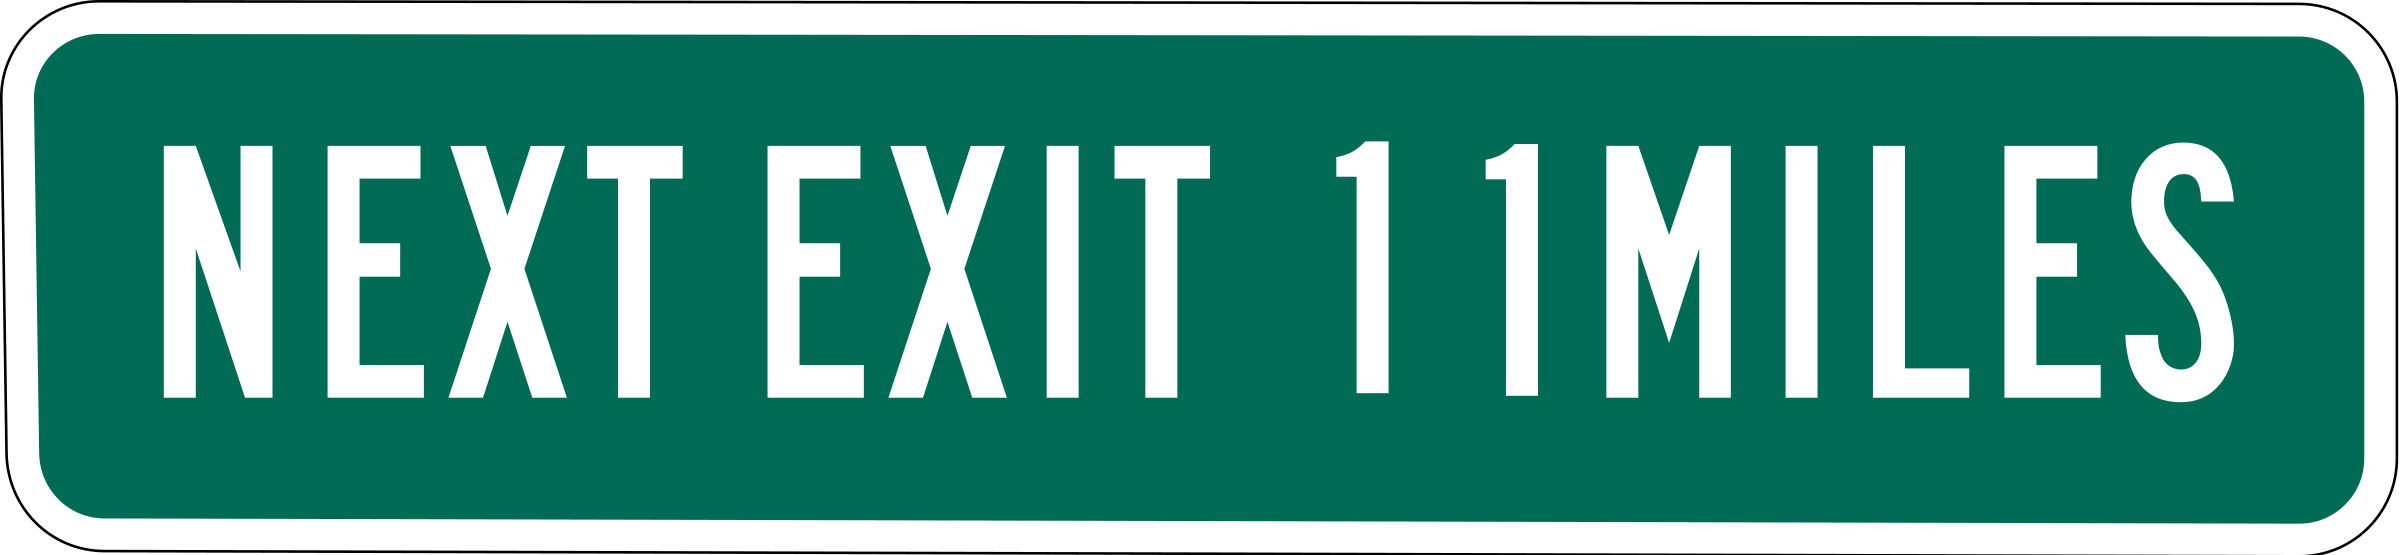 Next Exit 11 miles by Rfc1394